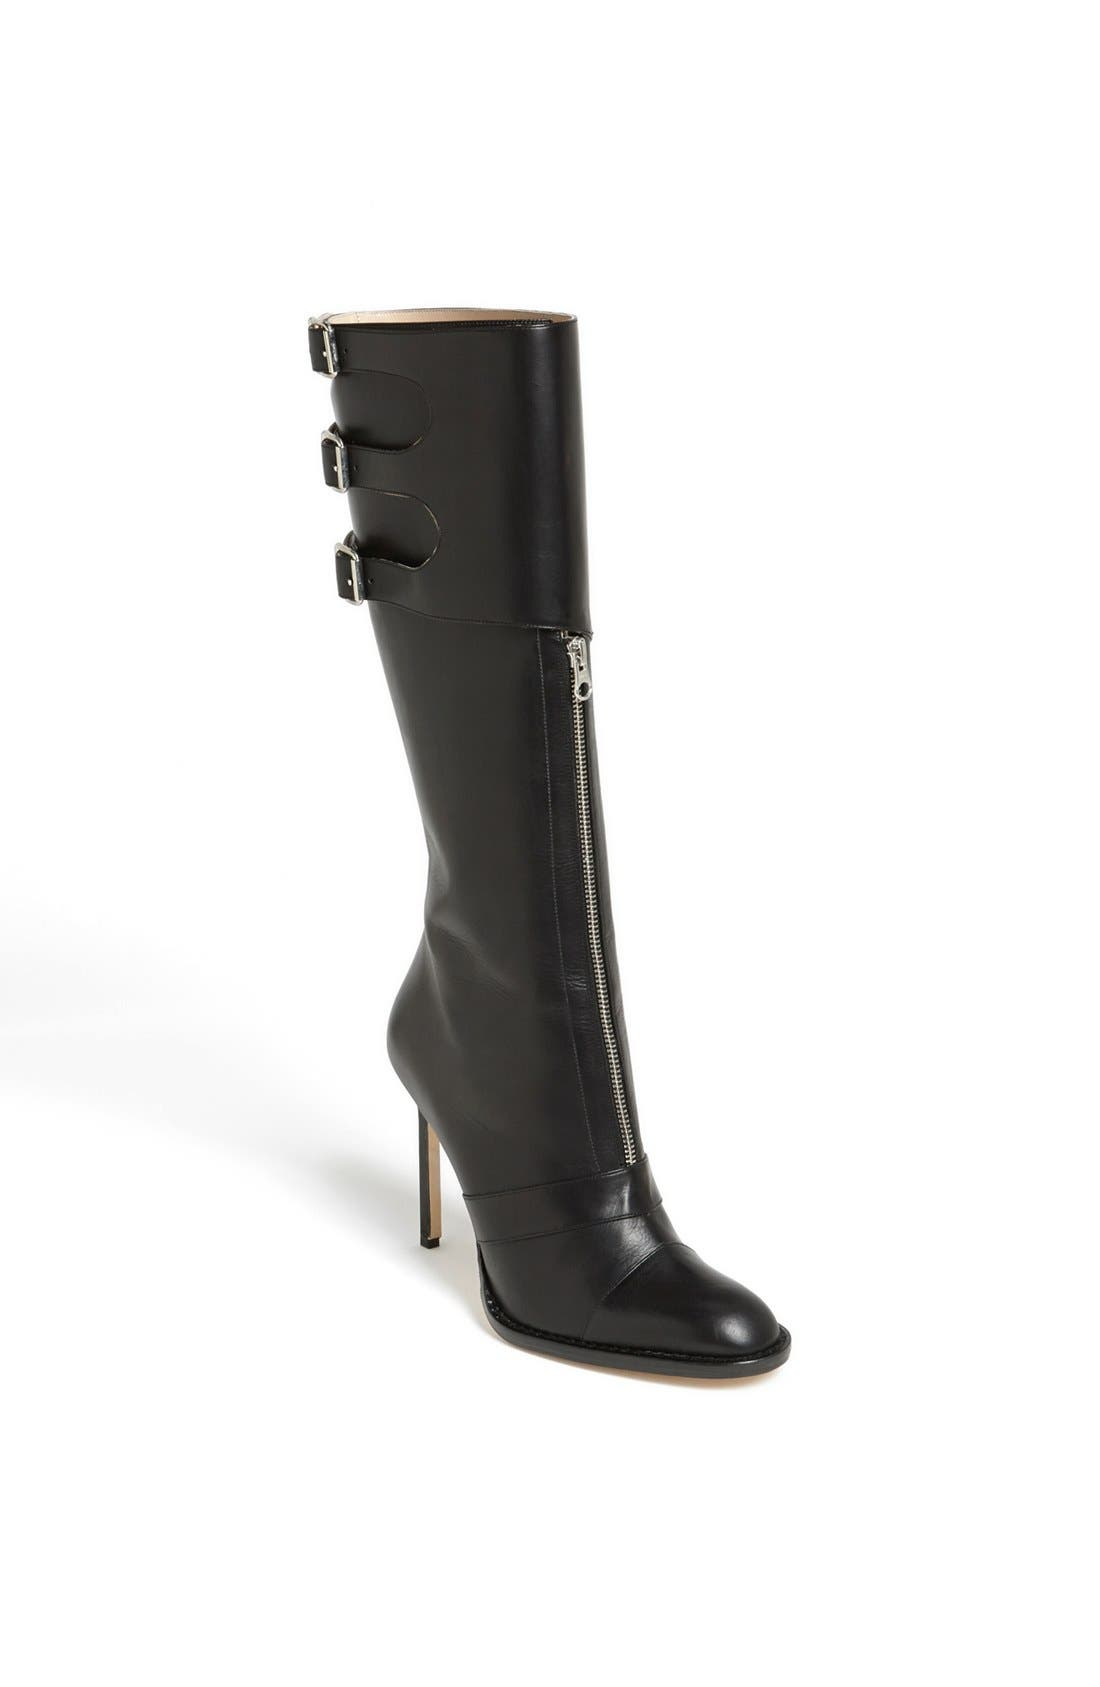 Alternate Image 1 Selected - Manolo Blahnik Tall Leather Boot